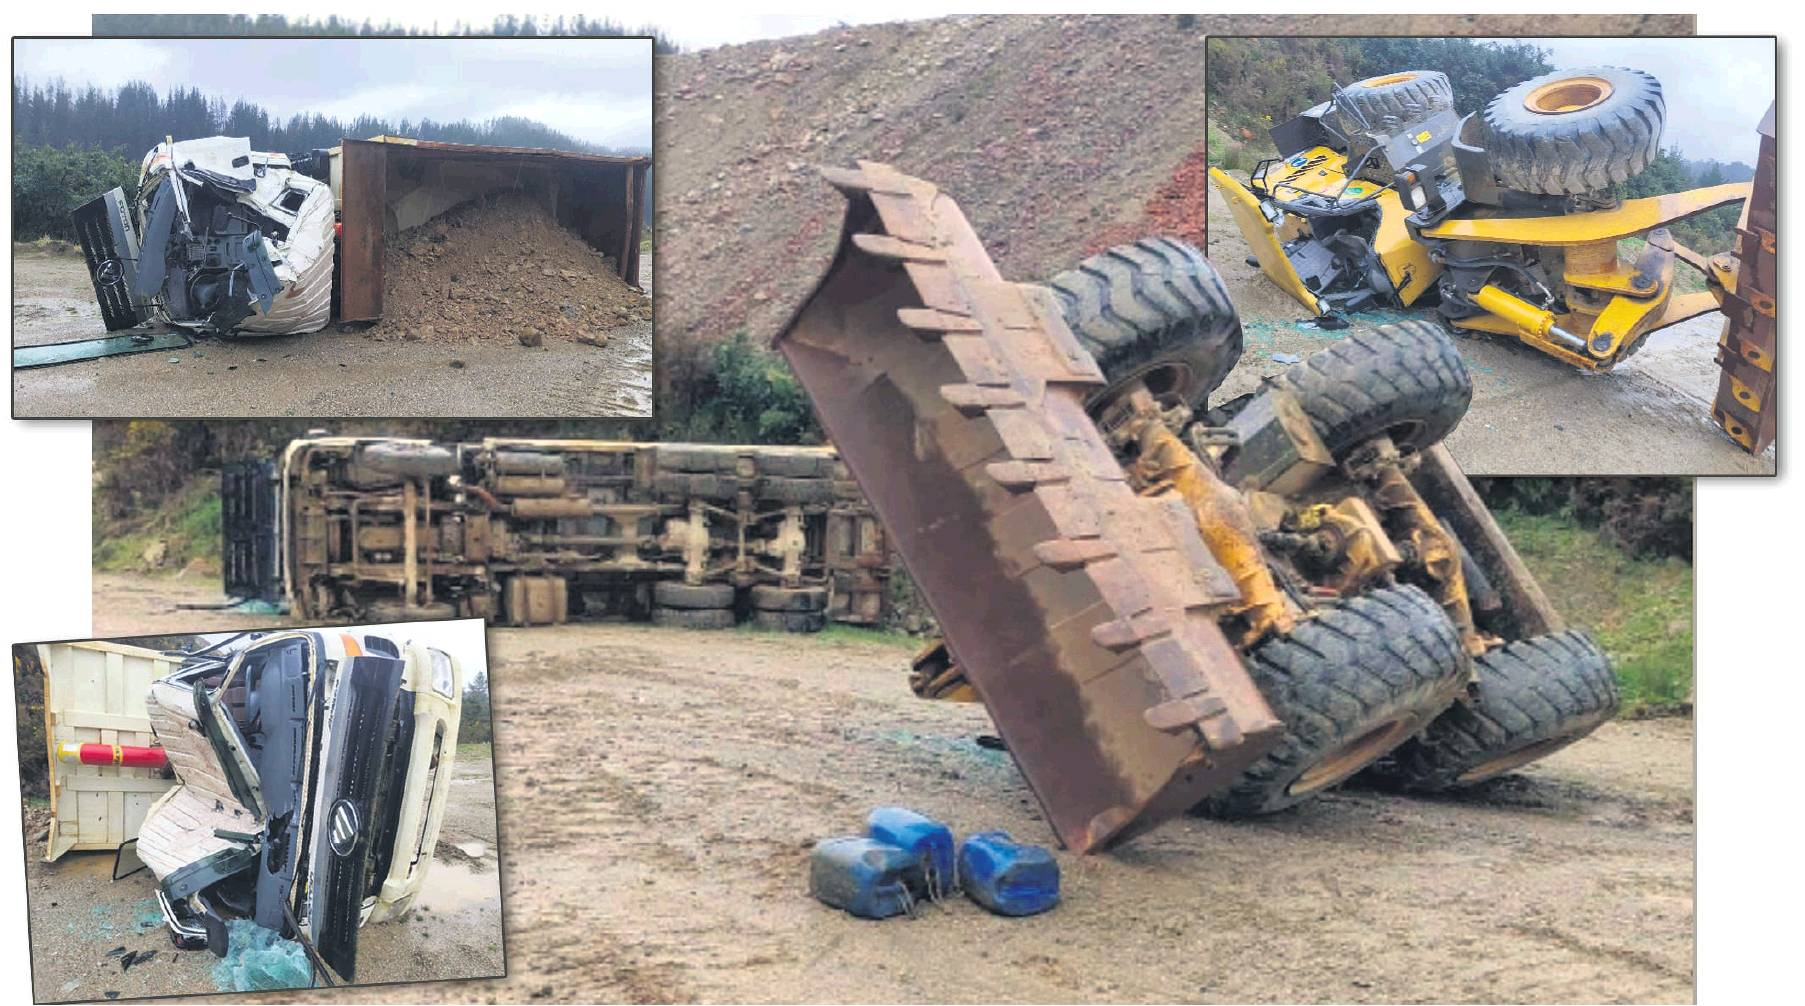 Vandals caused hundreds of thousands of dollars in damage to heavy machinery at a gold-mining...